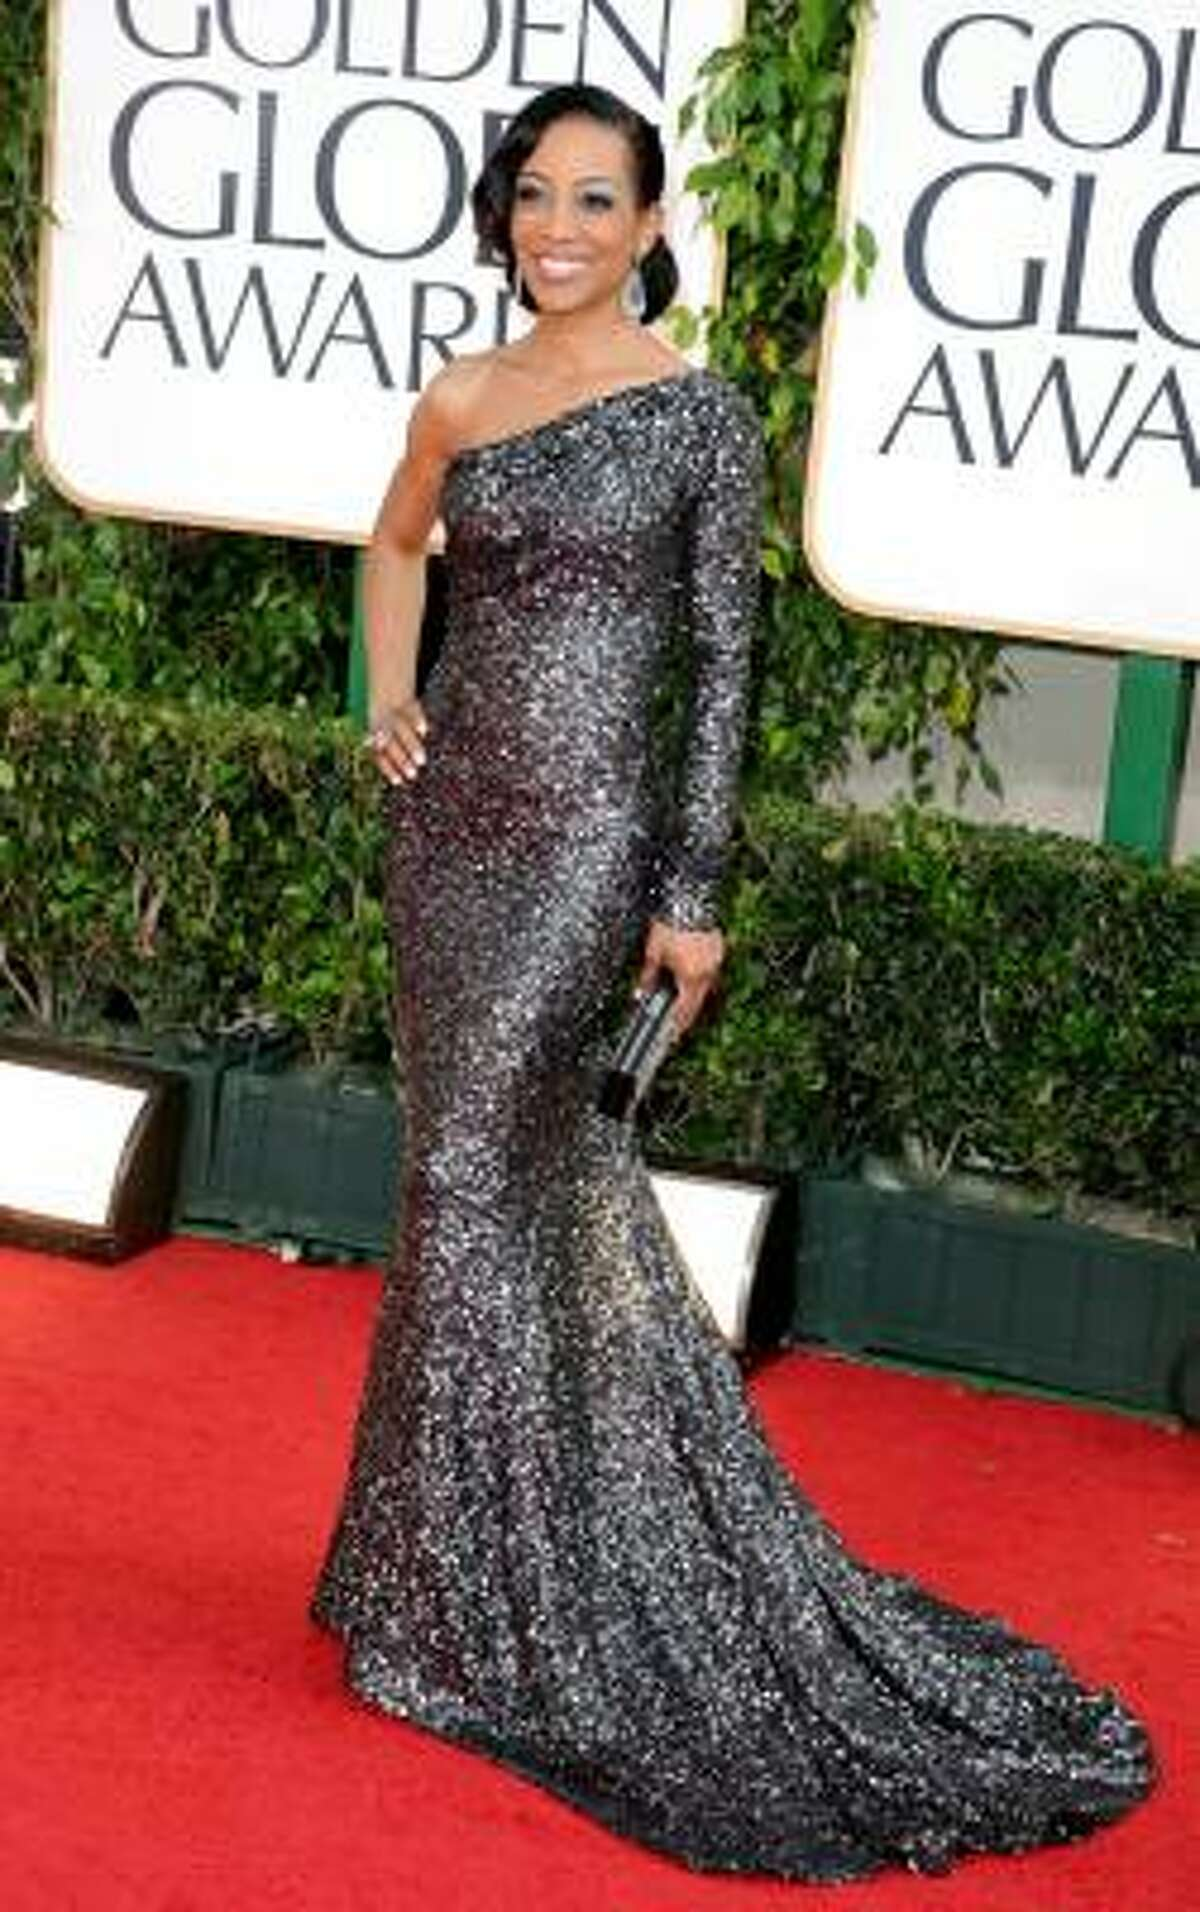 Access Hollywood's Shaun Robinson looked stunning in her charcoal, one shoulder sparkling gown.